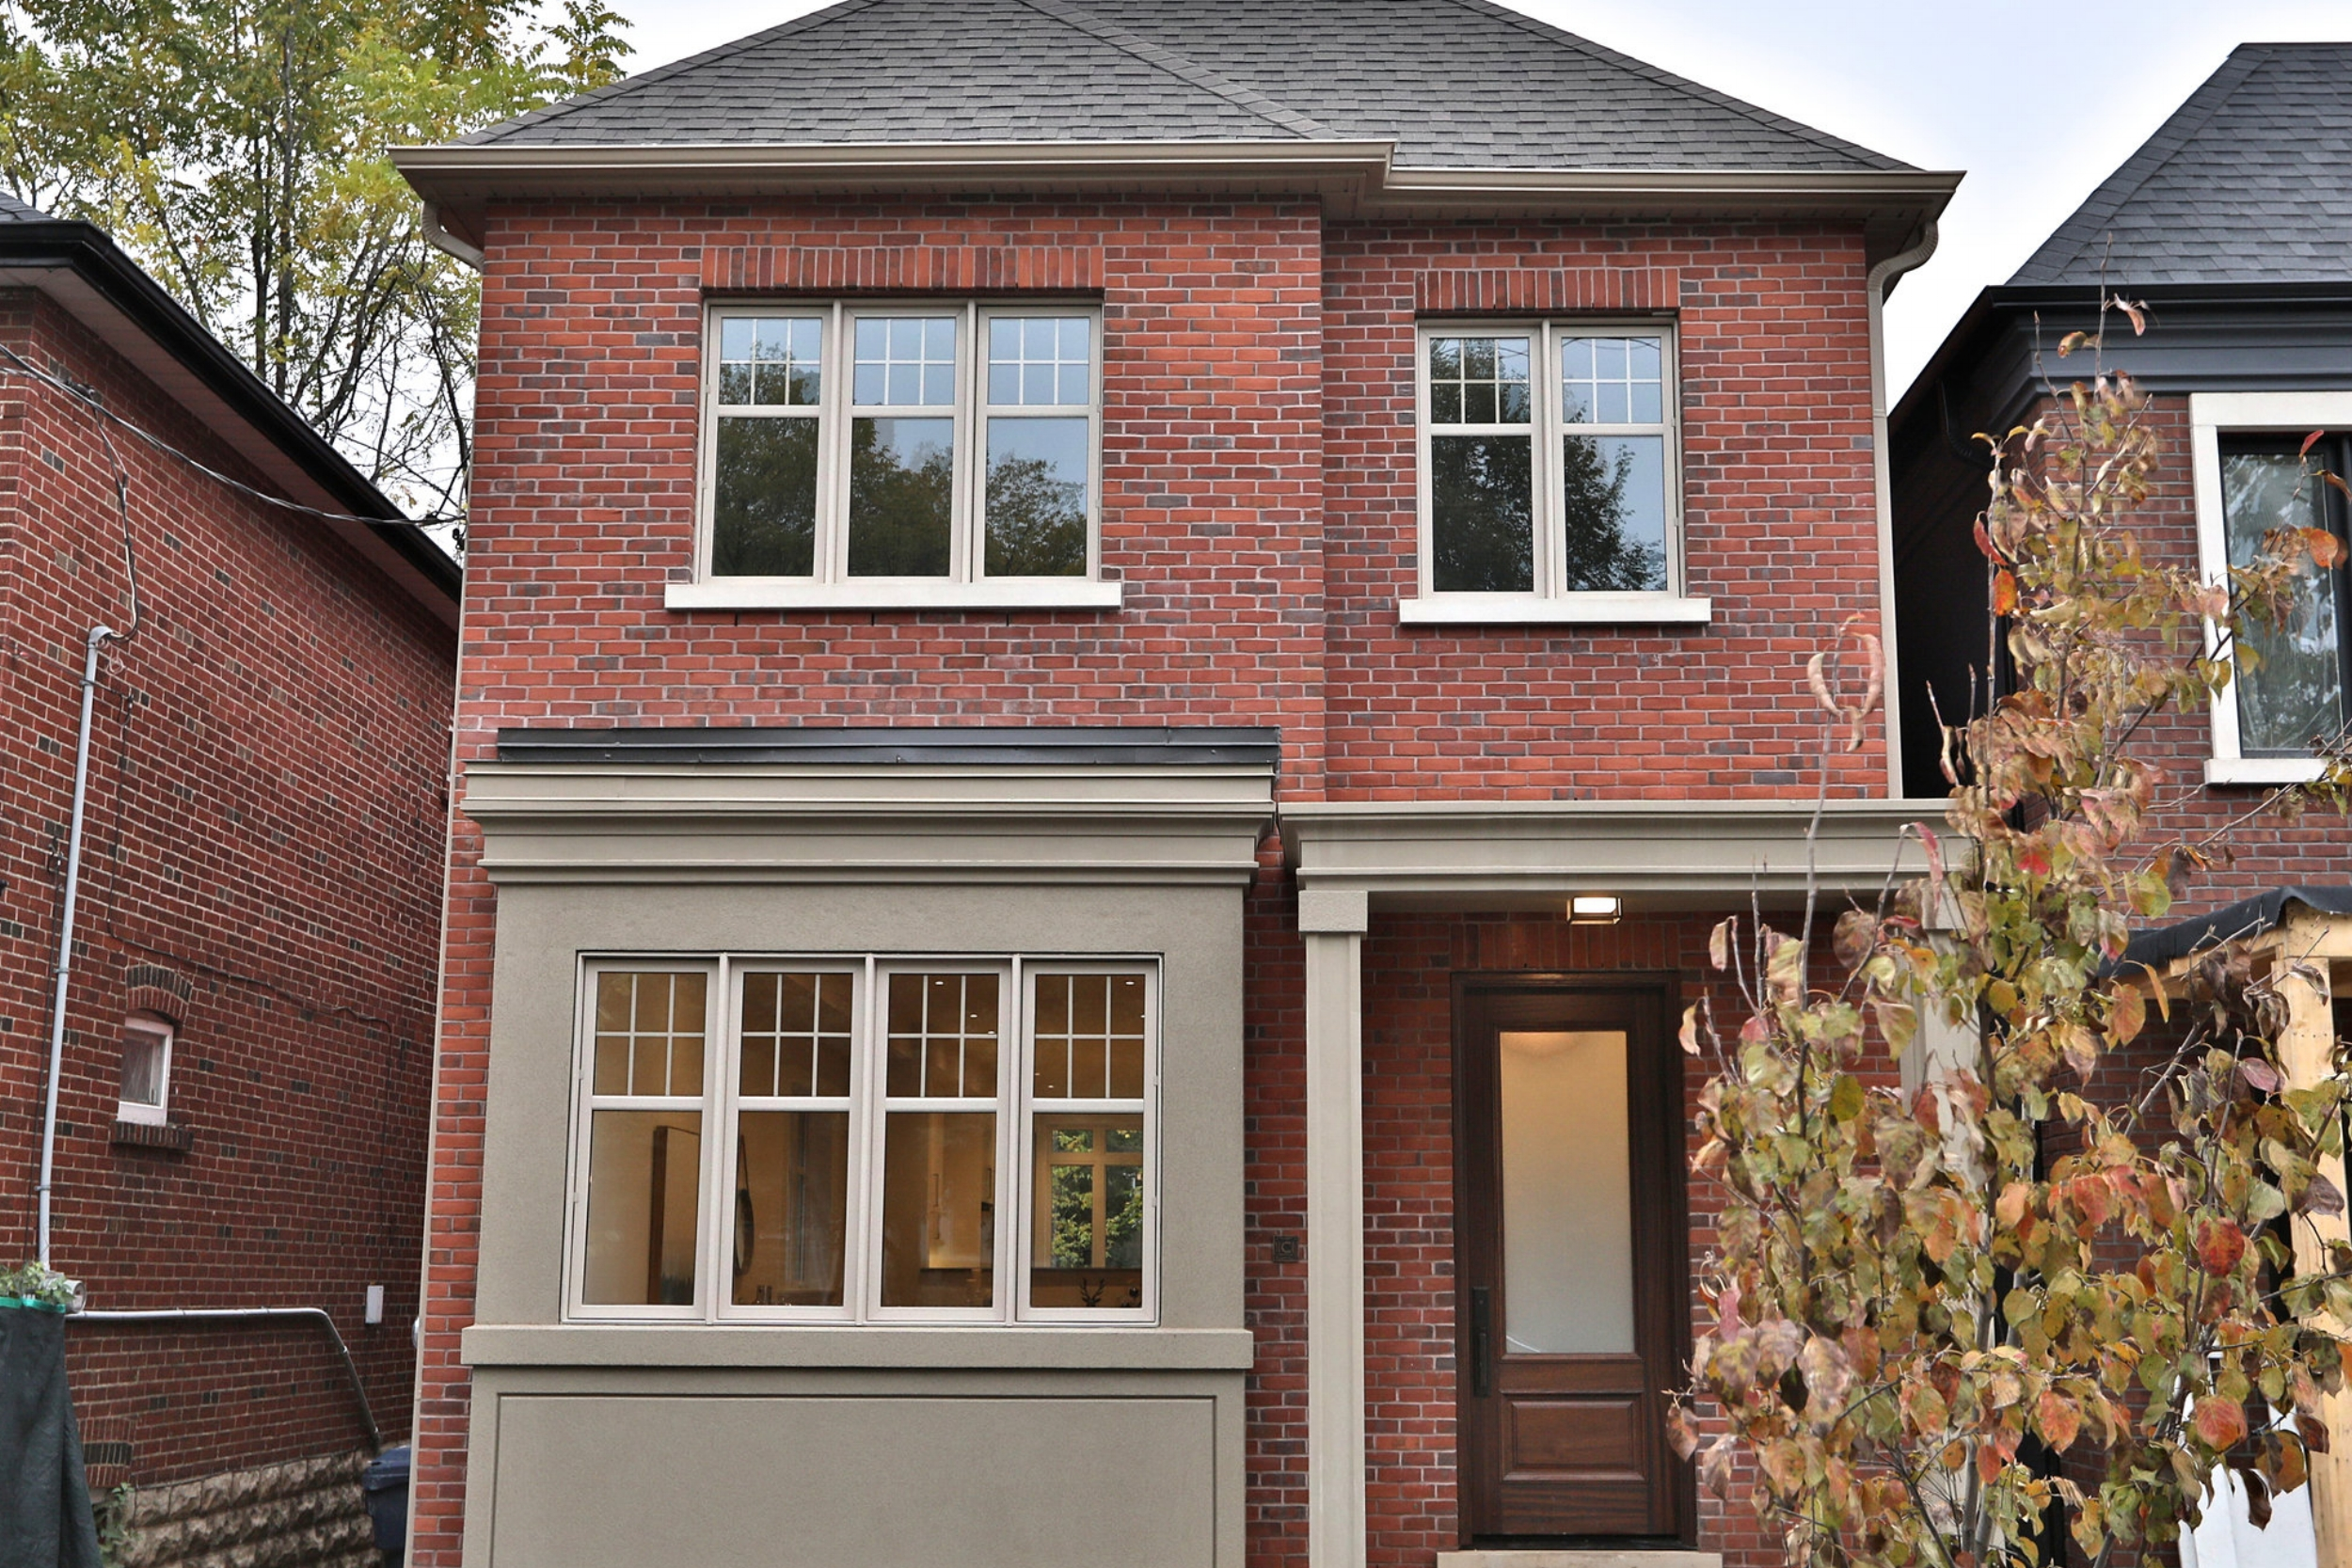 146 Manor Rd E - Davisville Village